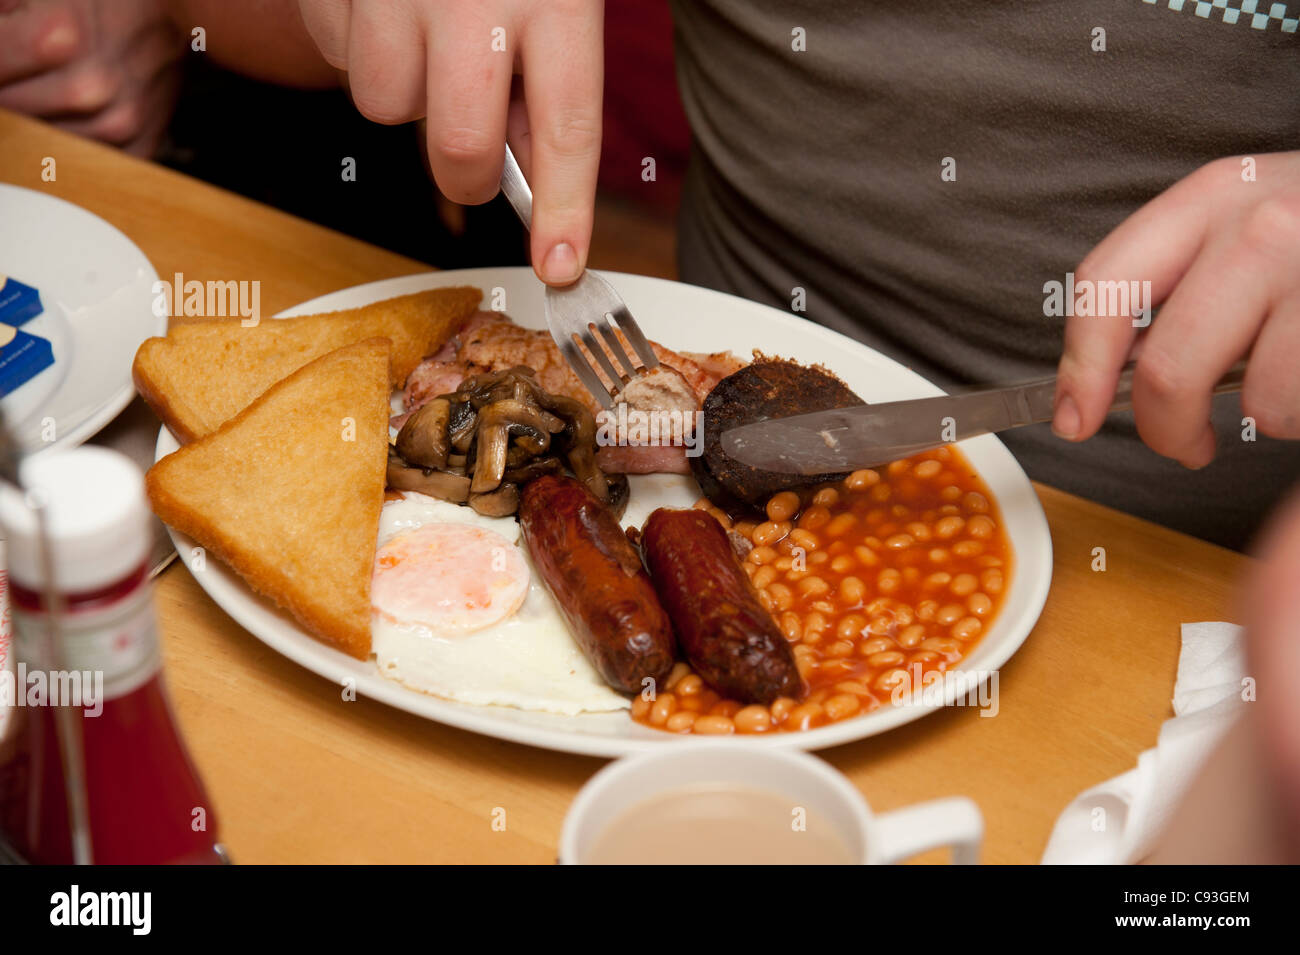 A 'greasy spoon' fried full english breakfast - bacon, egg, sausage, beans, fried bread, black pudding  - Stock Image